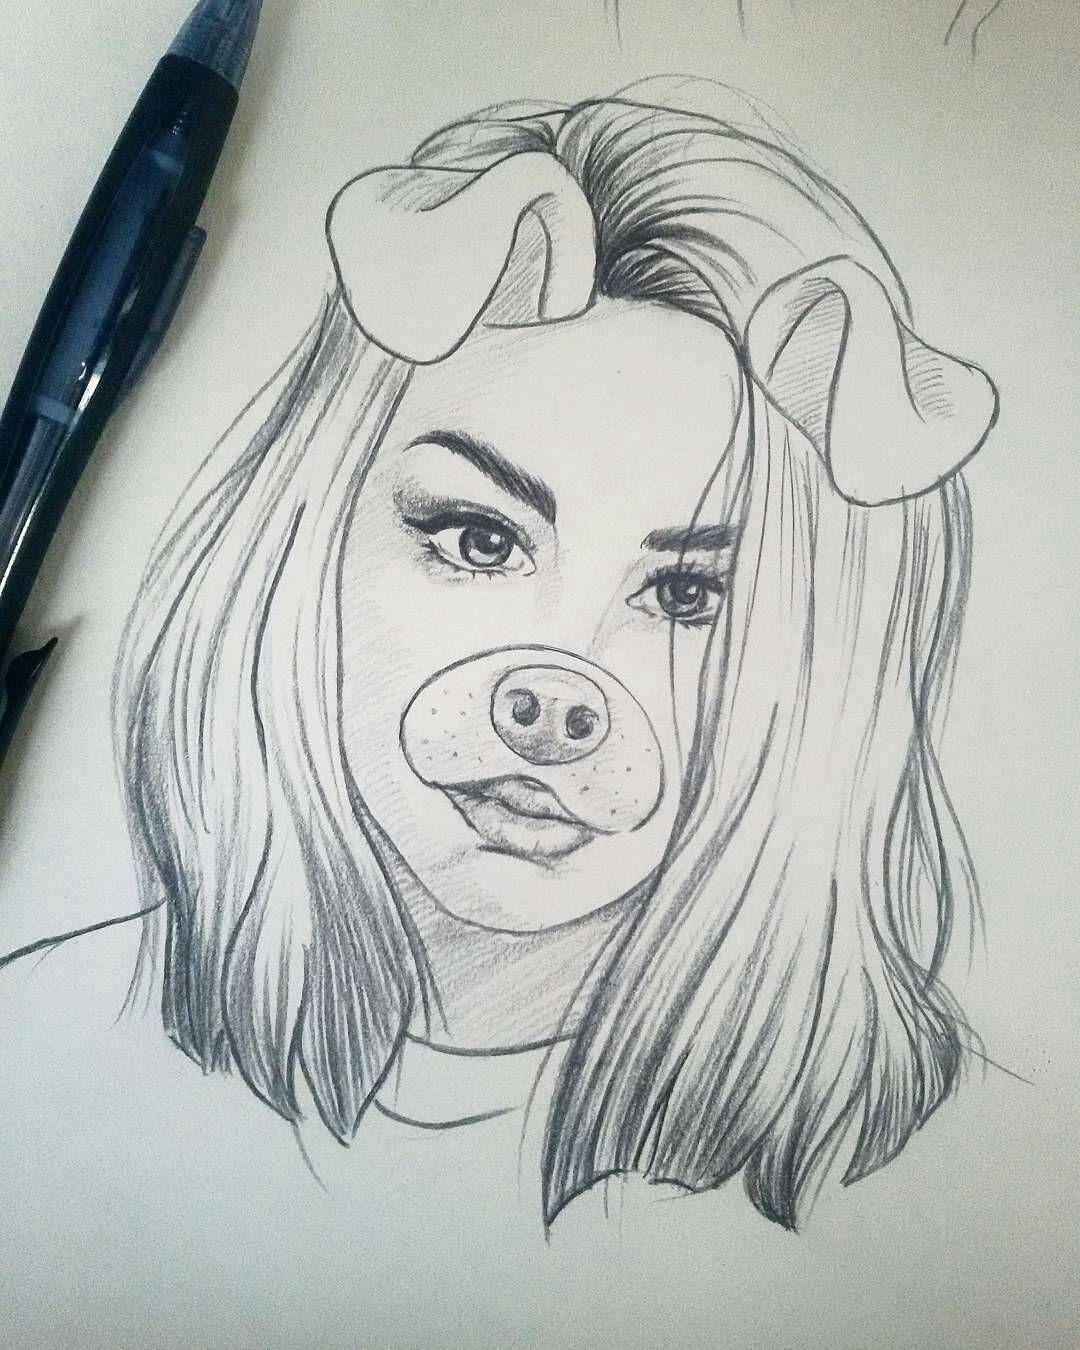 This amazing art belongs to aydaelhajoui puppy filter puppy puppyfilter snapchatfilter girl hair drawing sketch pencil pencildrawing